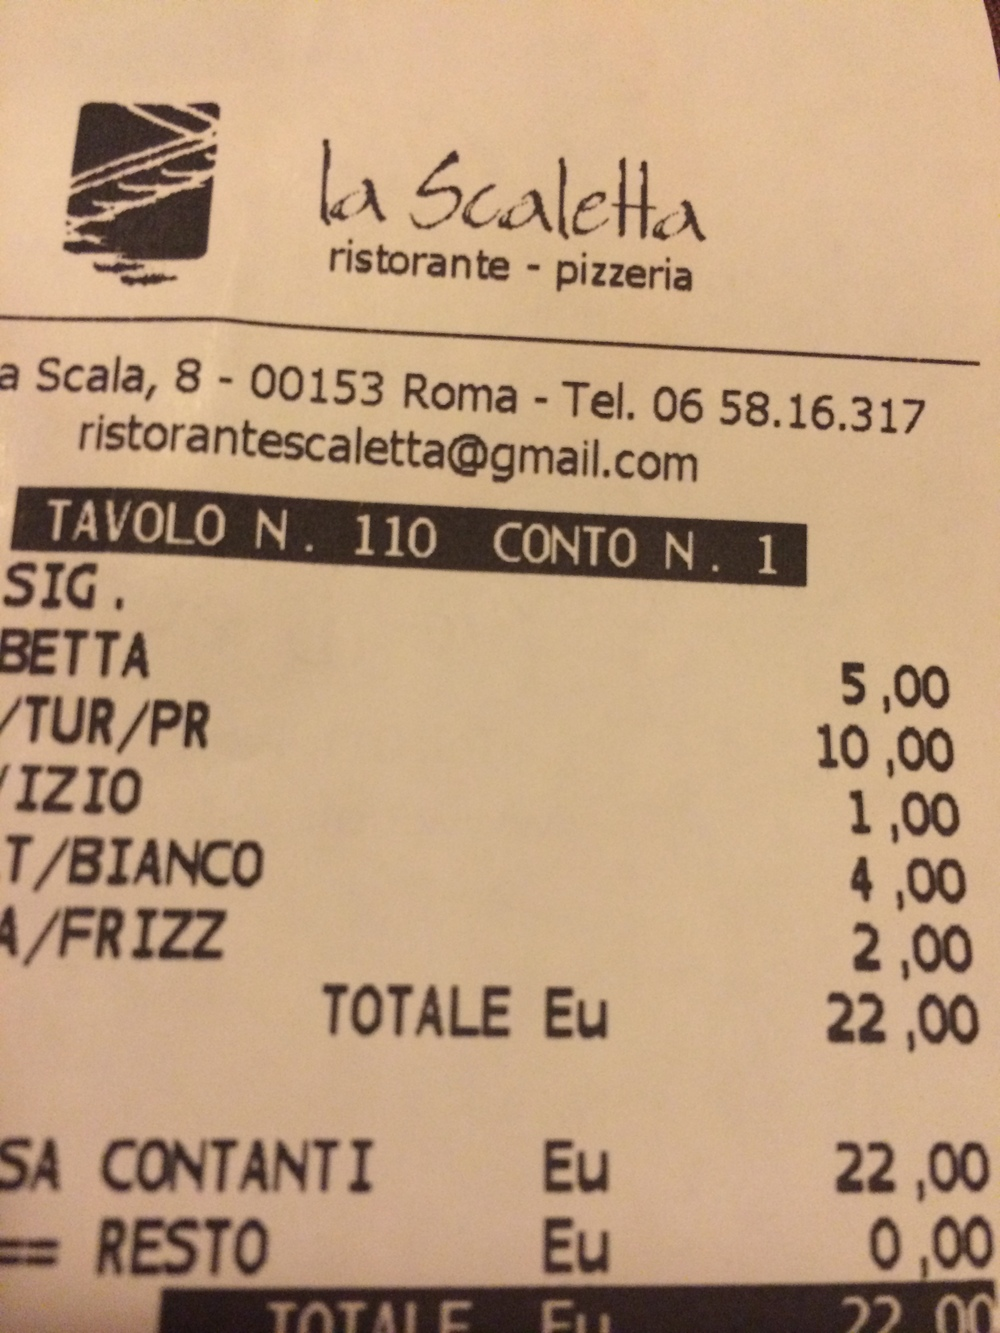 Our receipt at a restaurant in Trastevere! Only 22 EU and I had a 4 course meal, we had a liter of wine, water, and Nick had a pizza! Amazing!